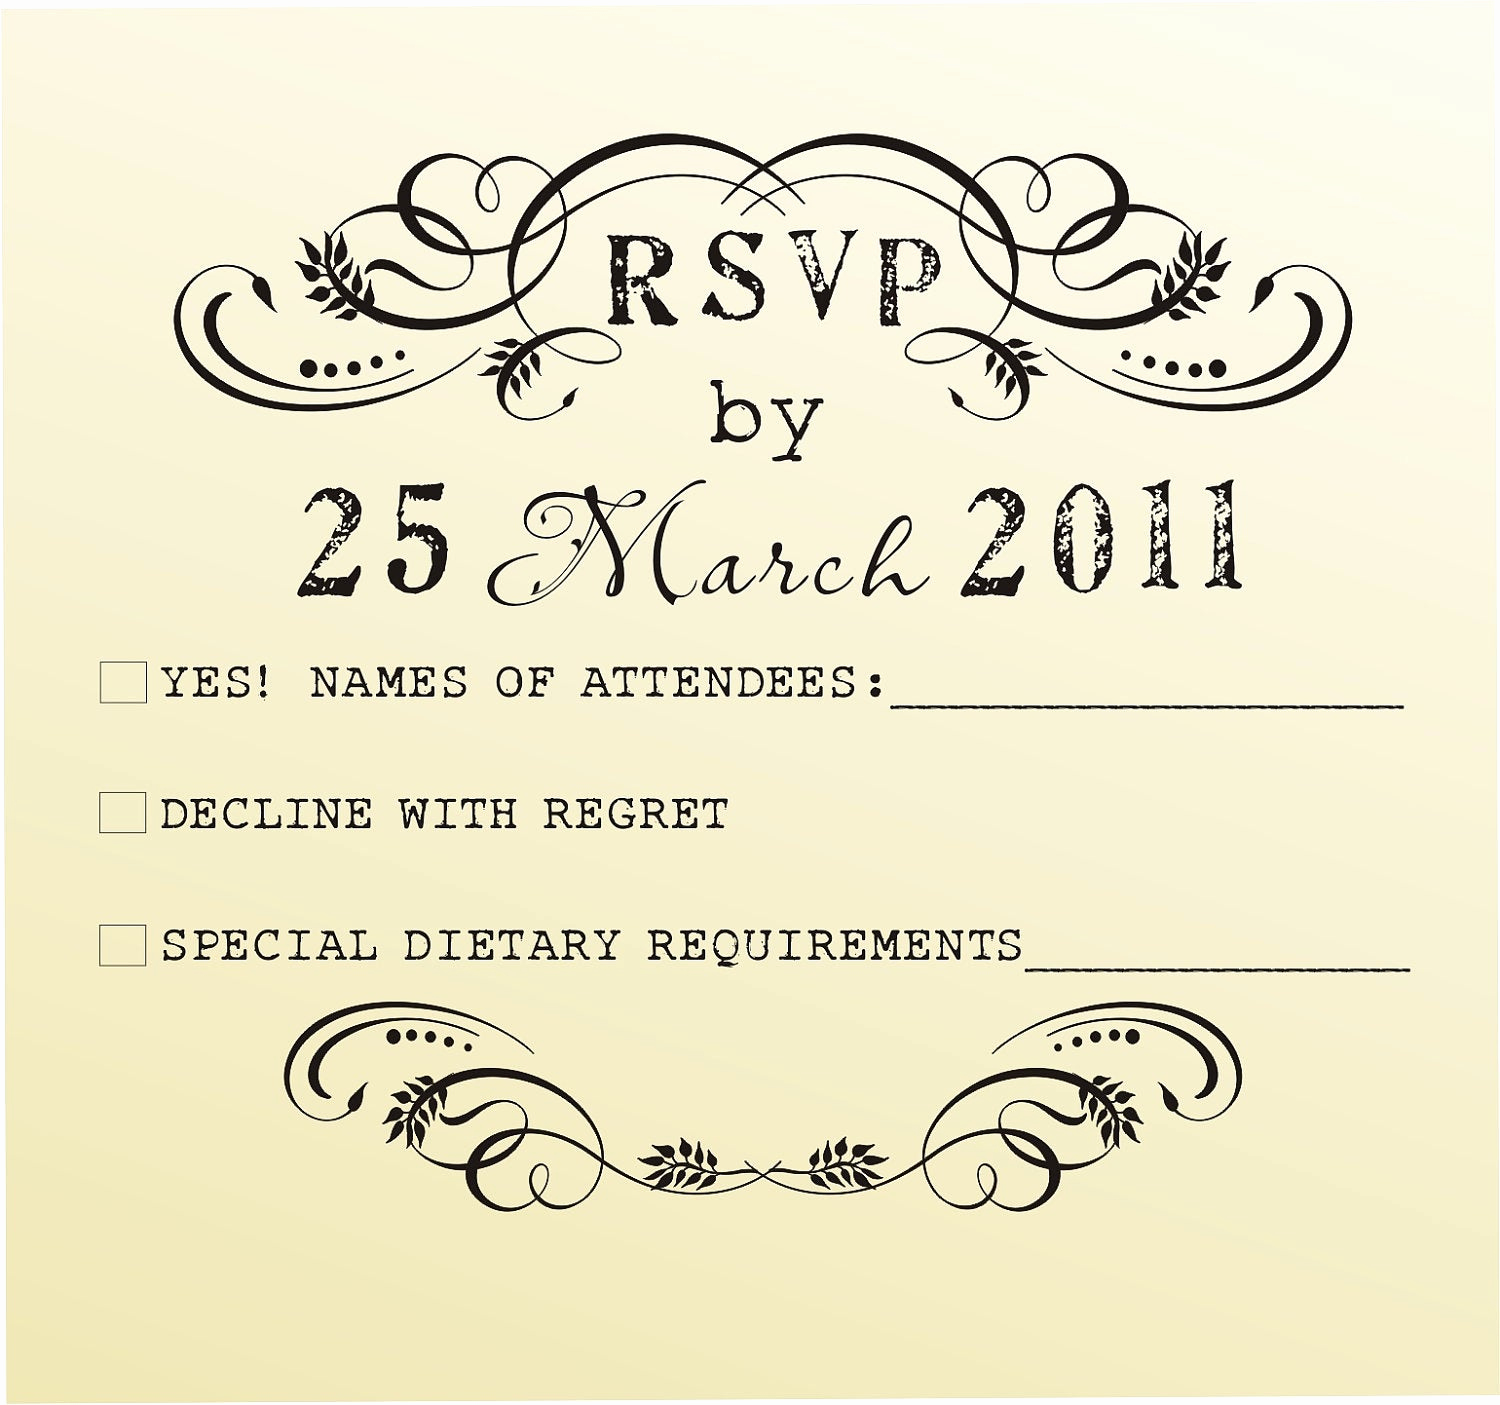 Rsvp Wedding Invitation Wording Unique Rsvp Rubber Stamp for Custom Diy Wedding Invitations Style